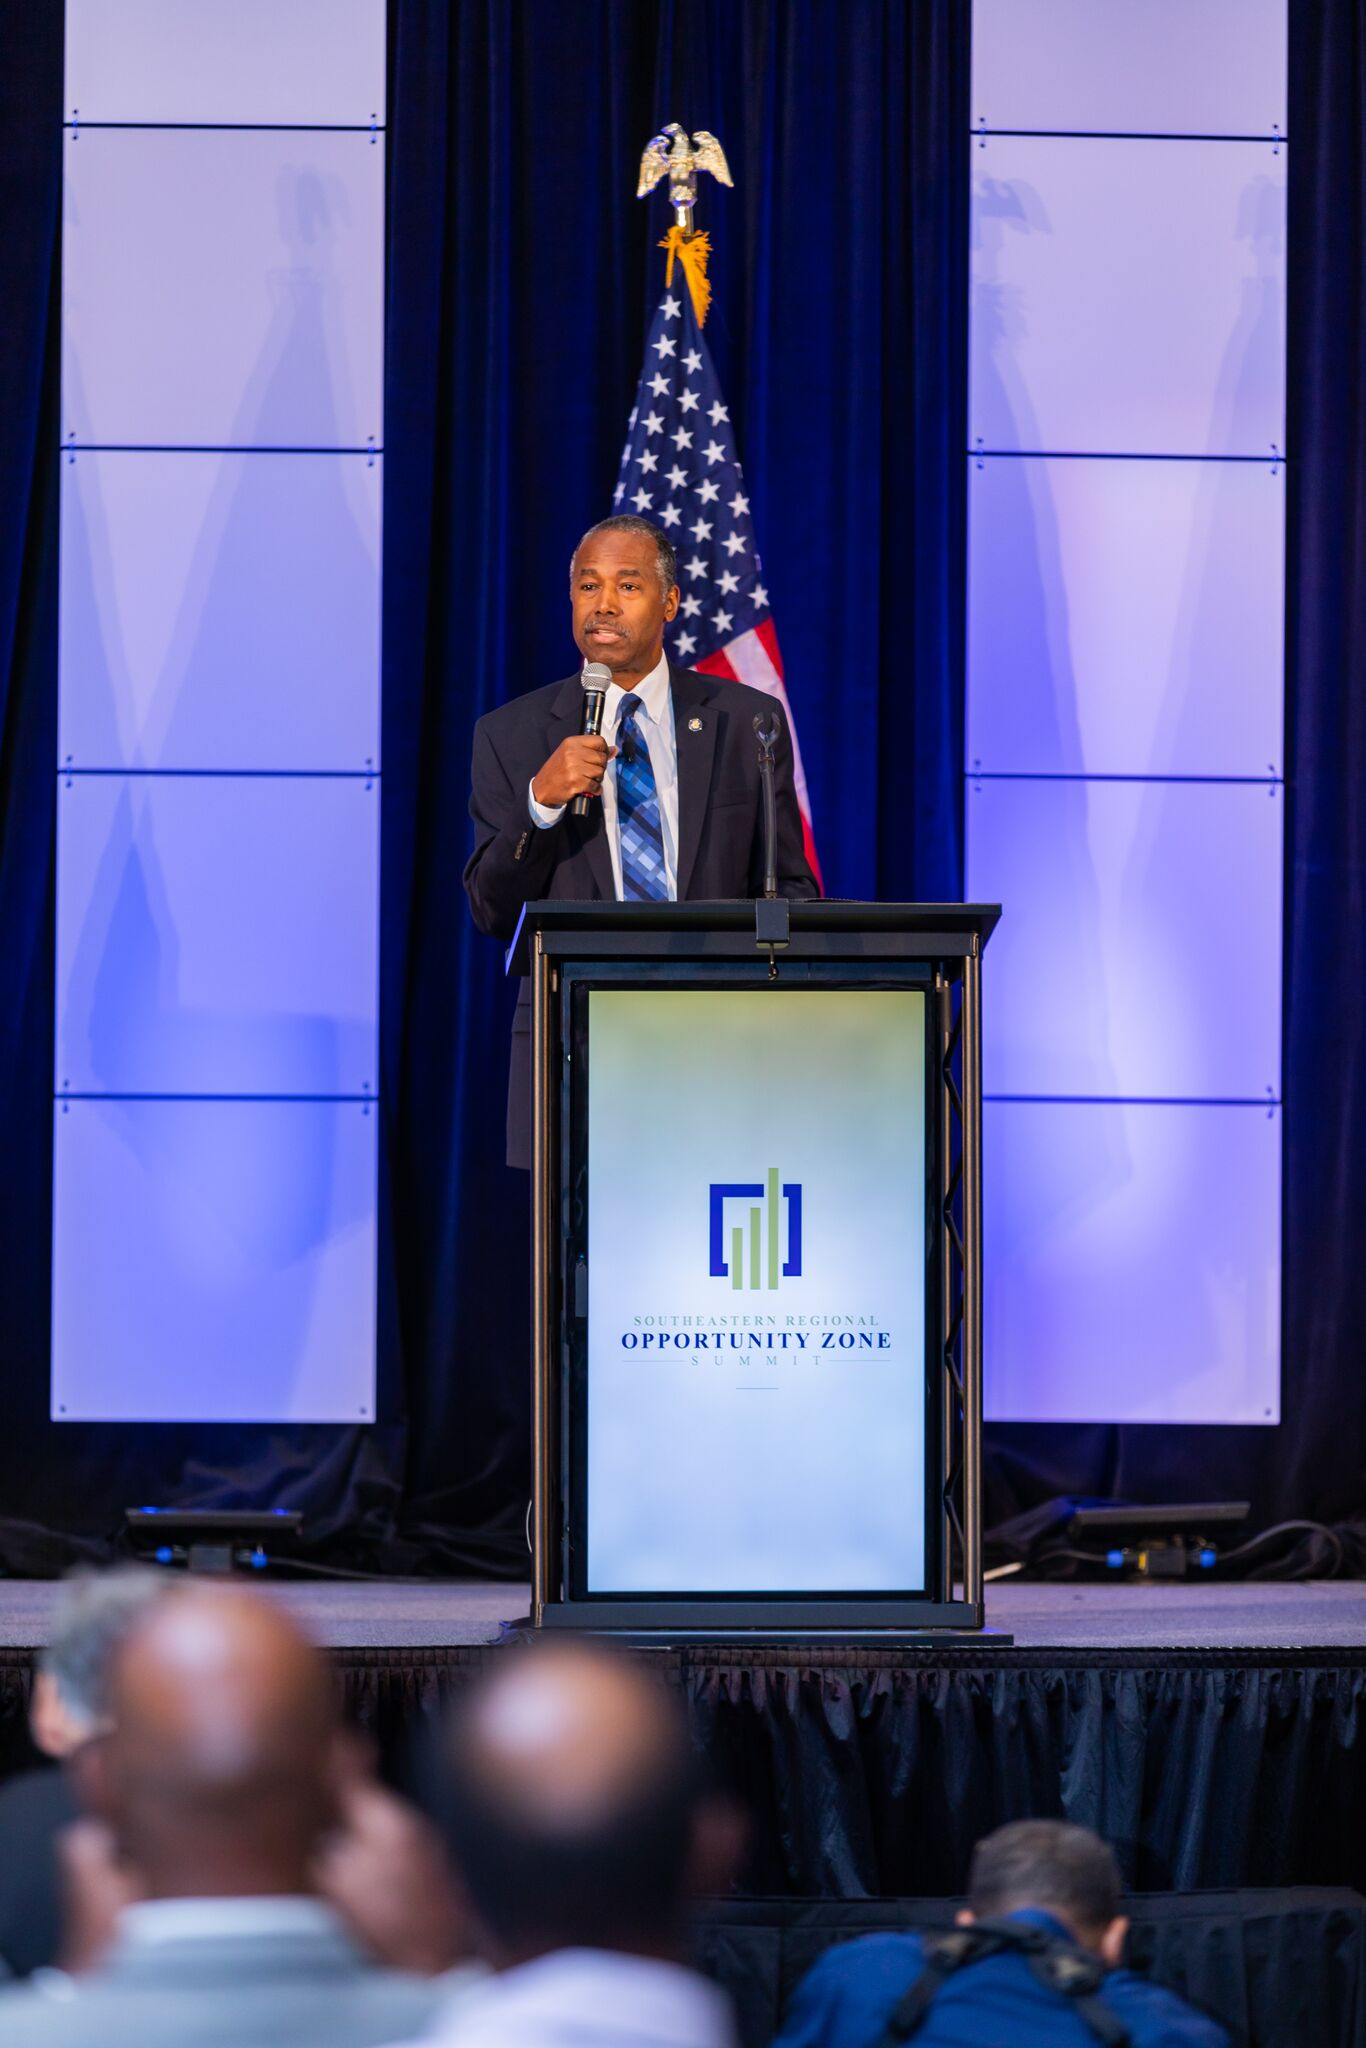 Secretary Carson announces new Opportunity Zones resources in Jackson, MS